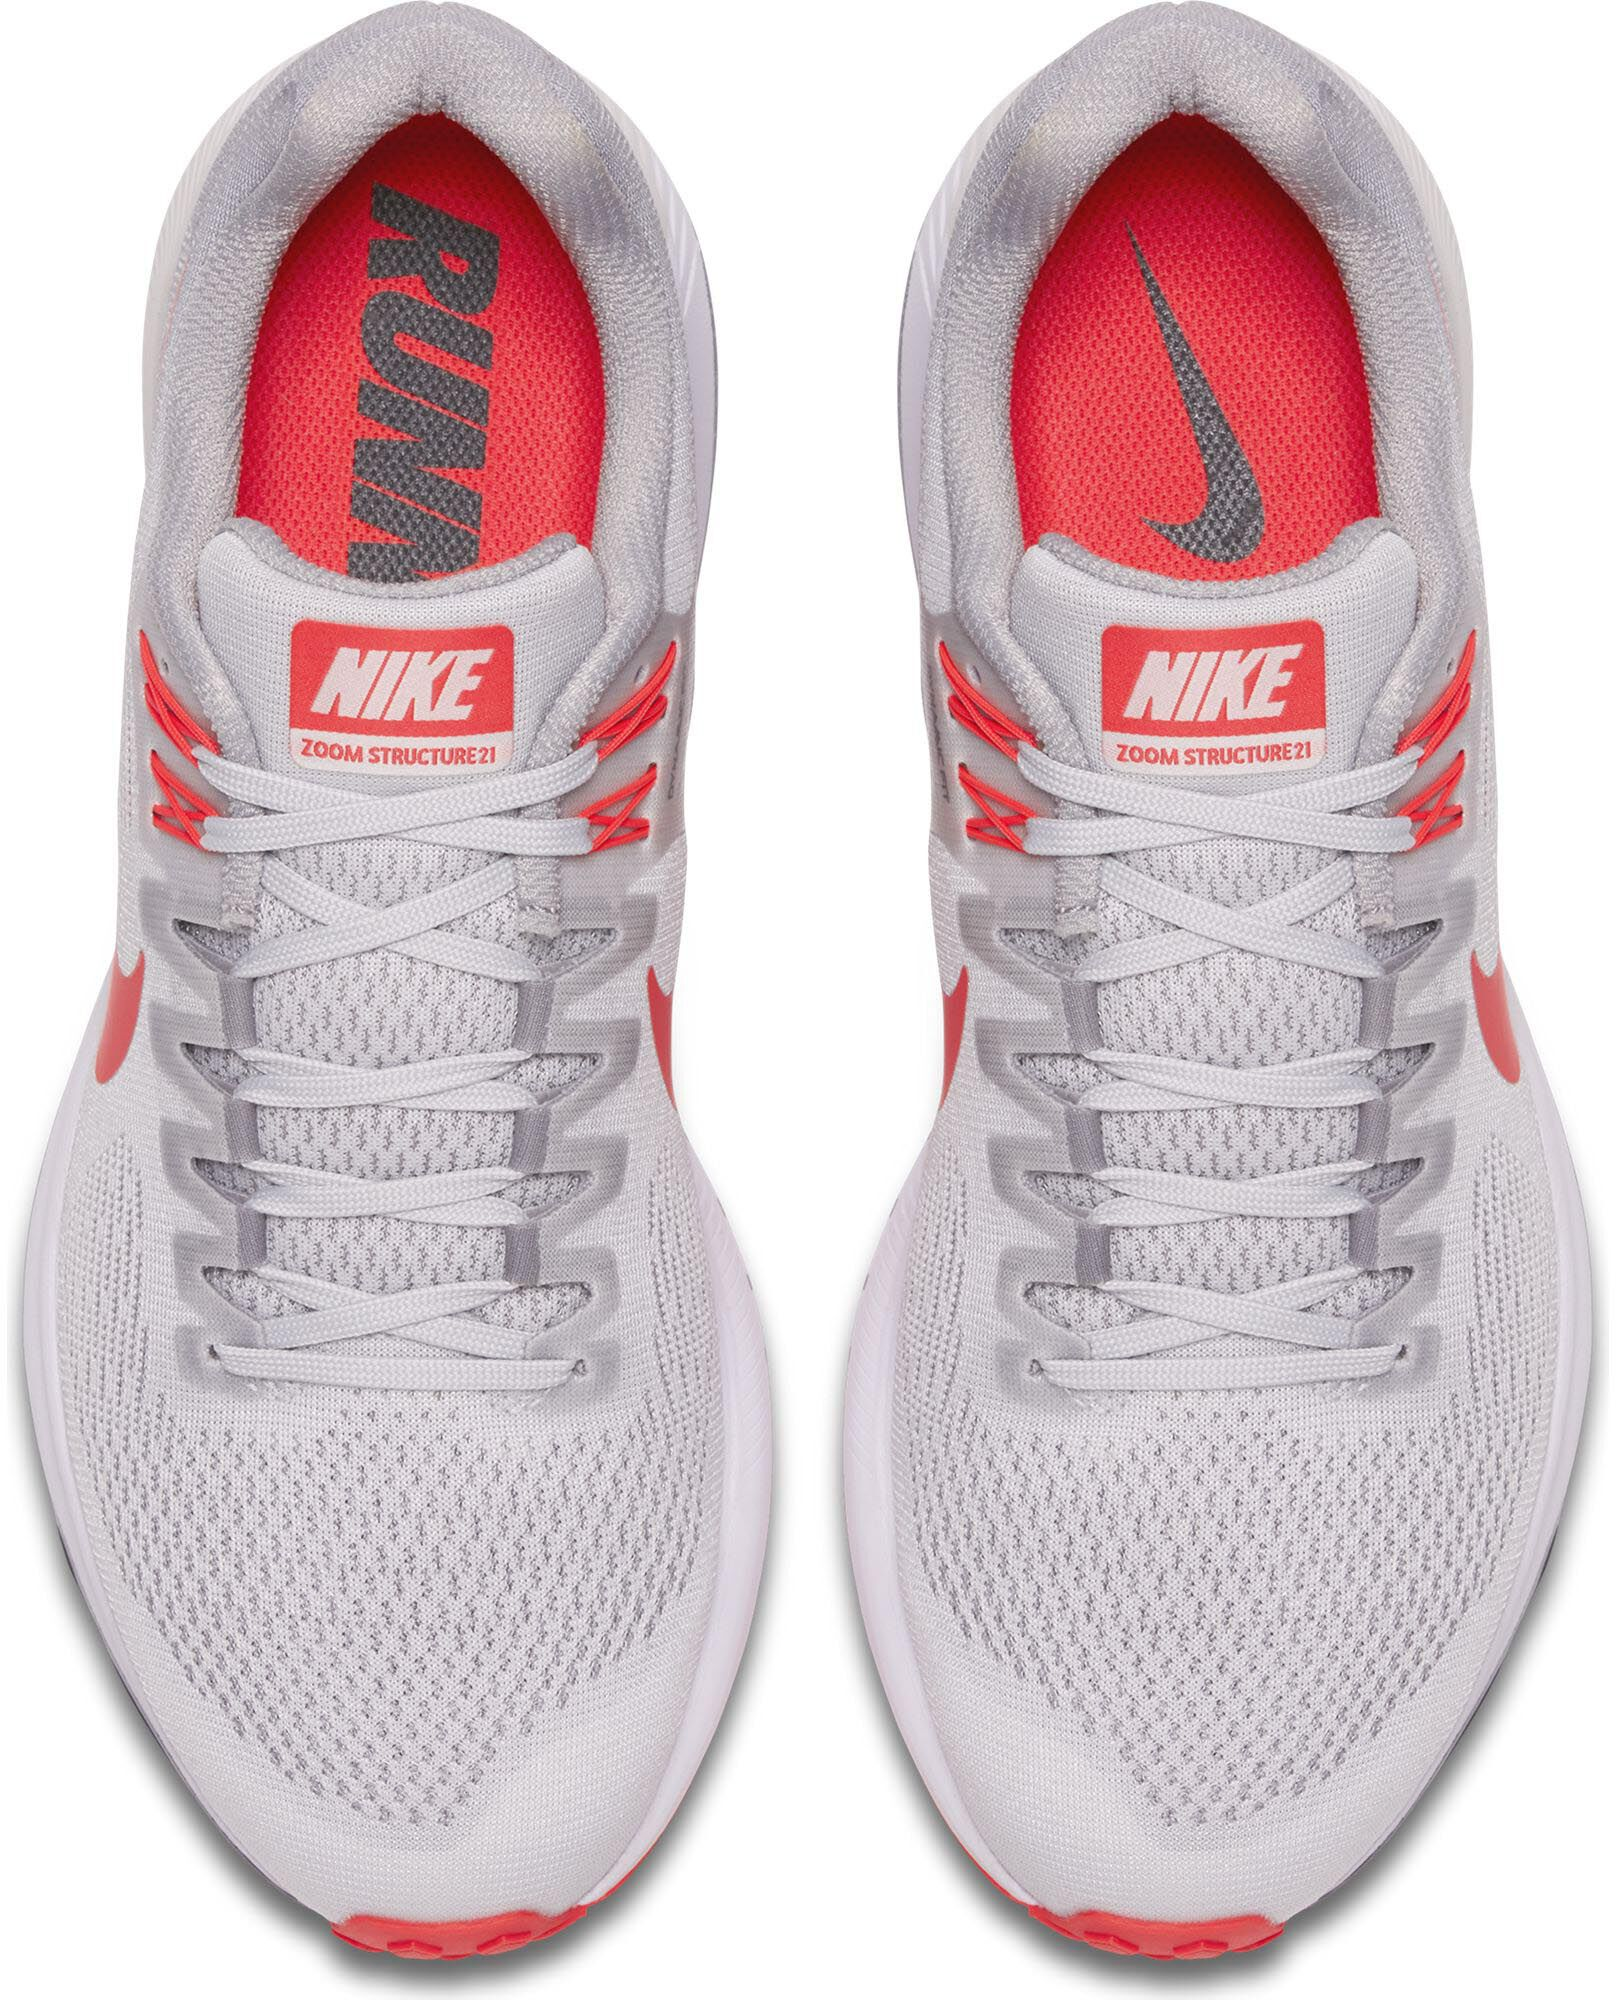 · Nike 21 Hombre Structure Air Zoom Yfv76gbIy